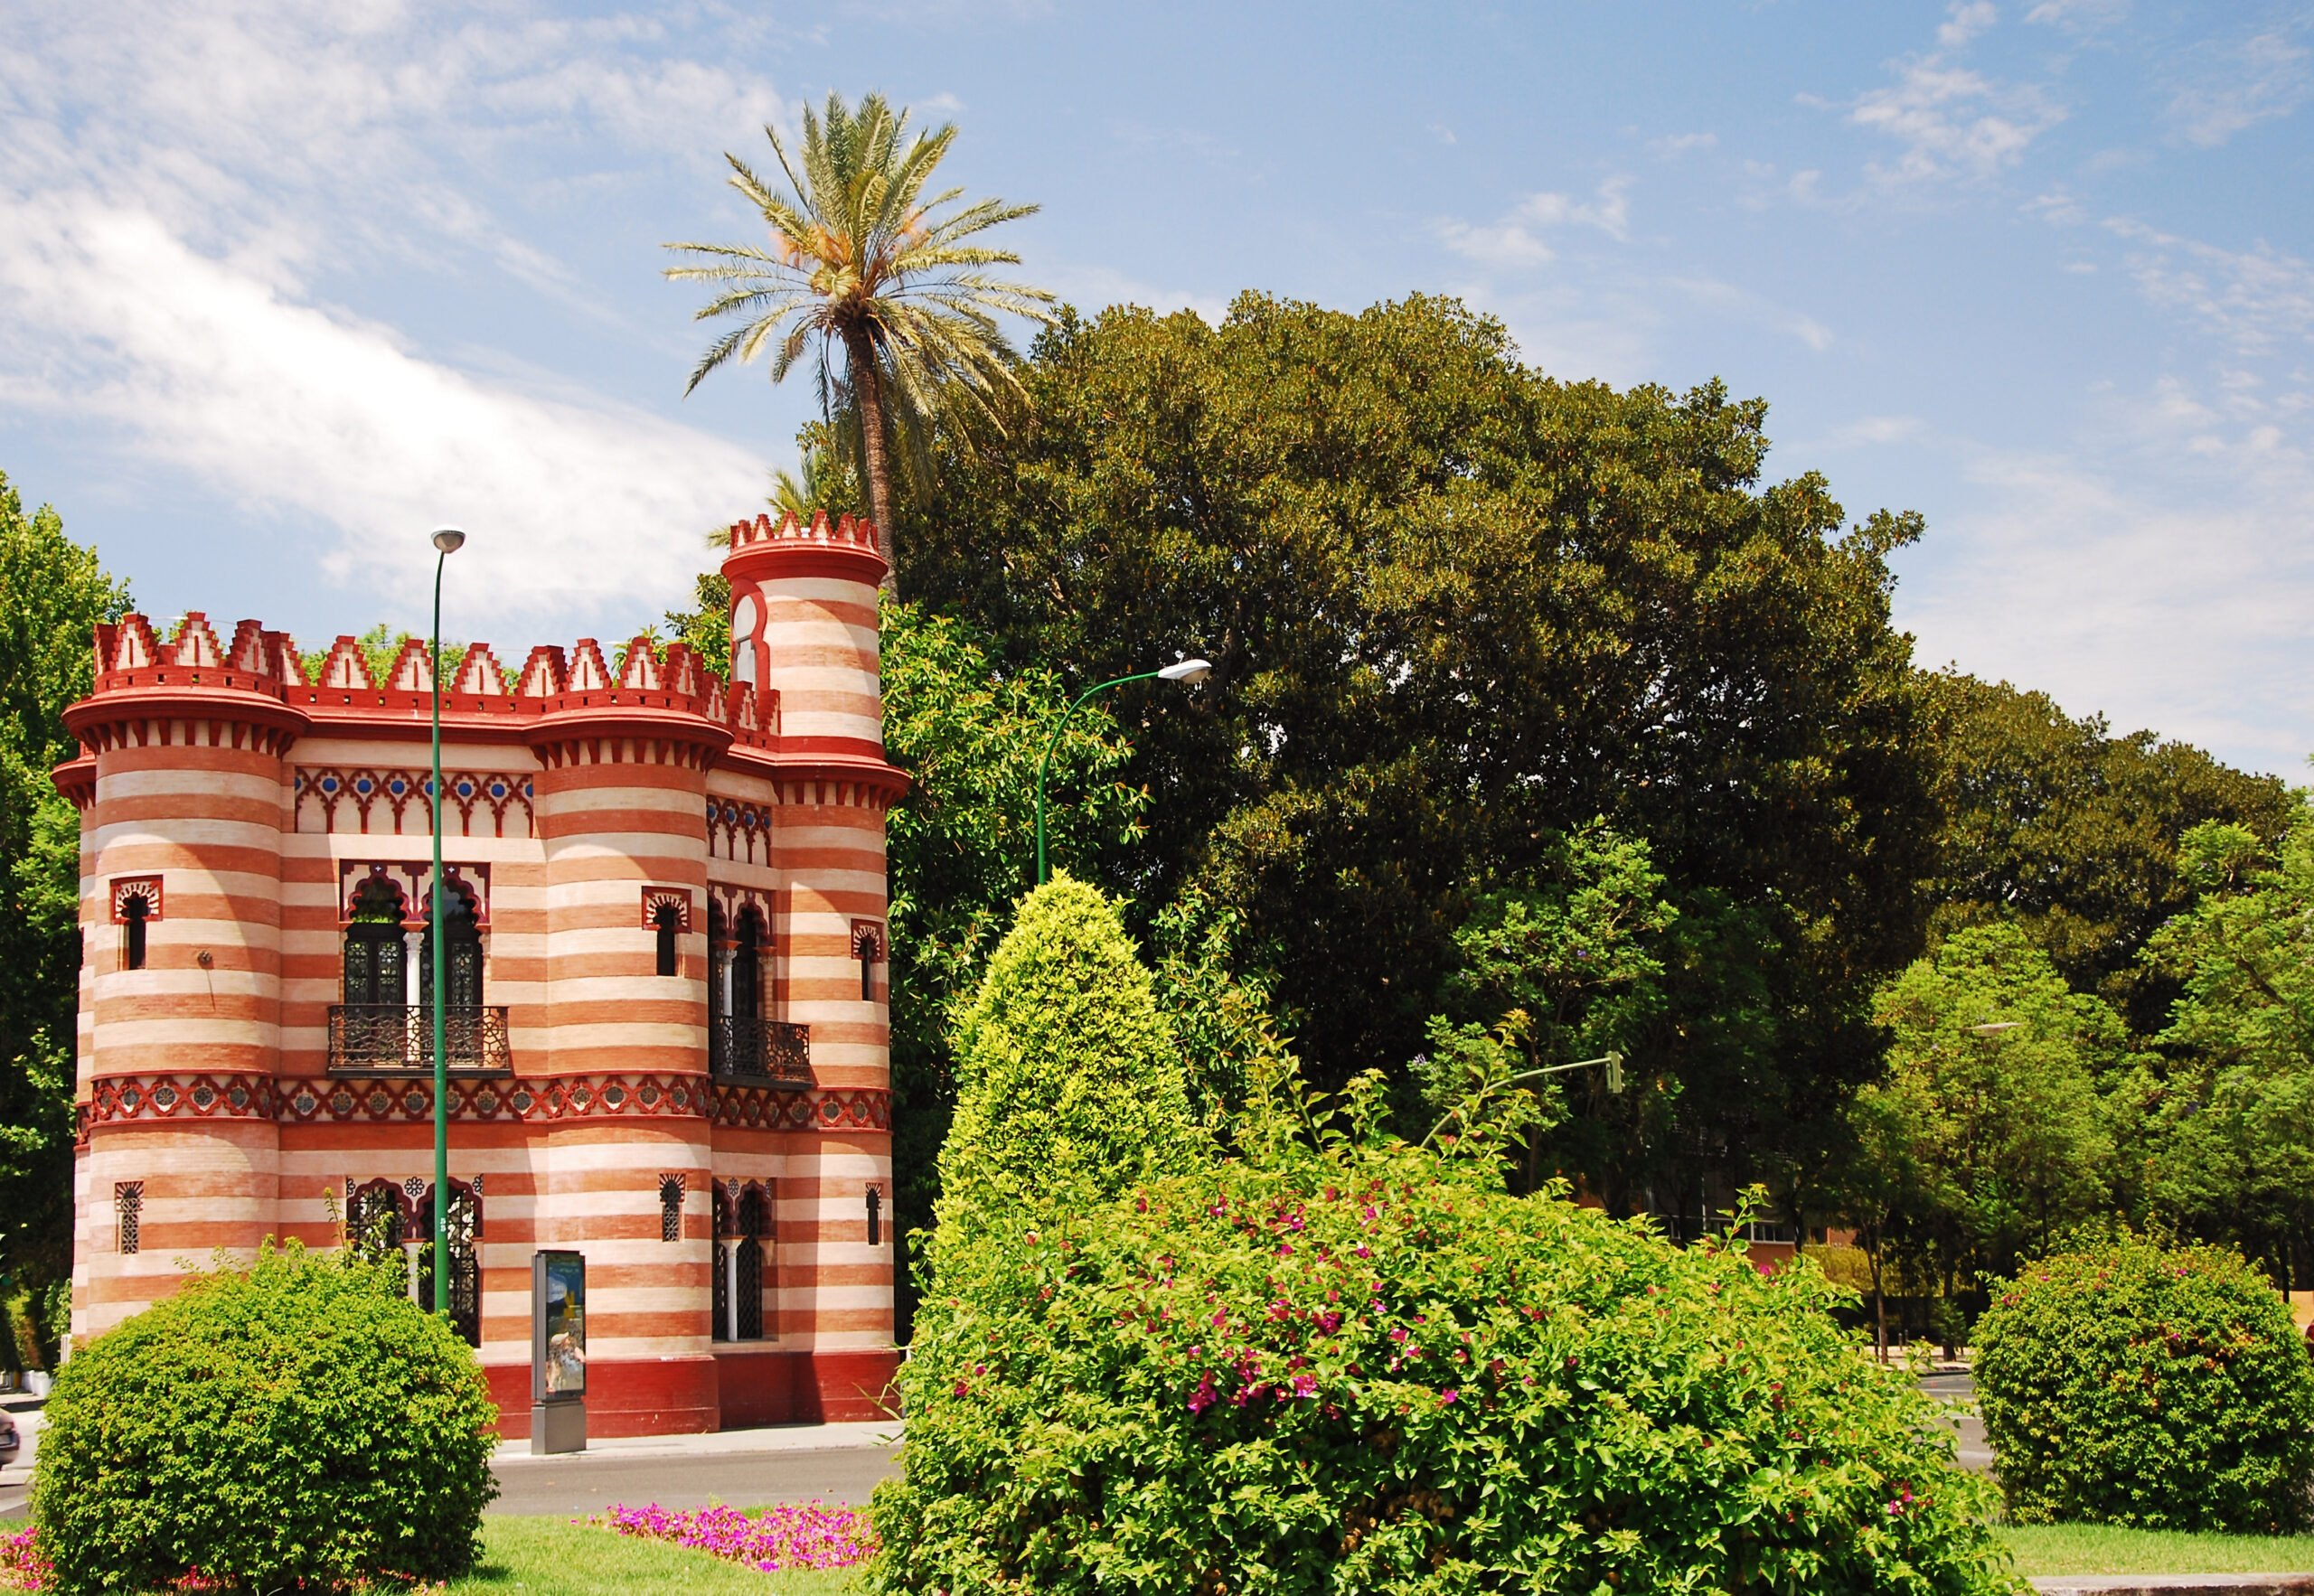 Learn More About The Costurero De La Reina On The Women Of Seville Walking Tour